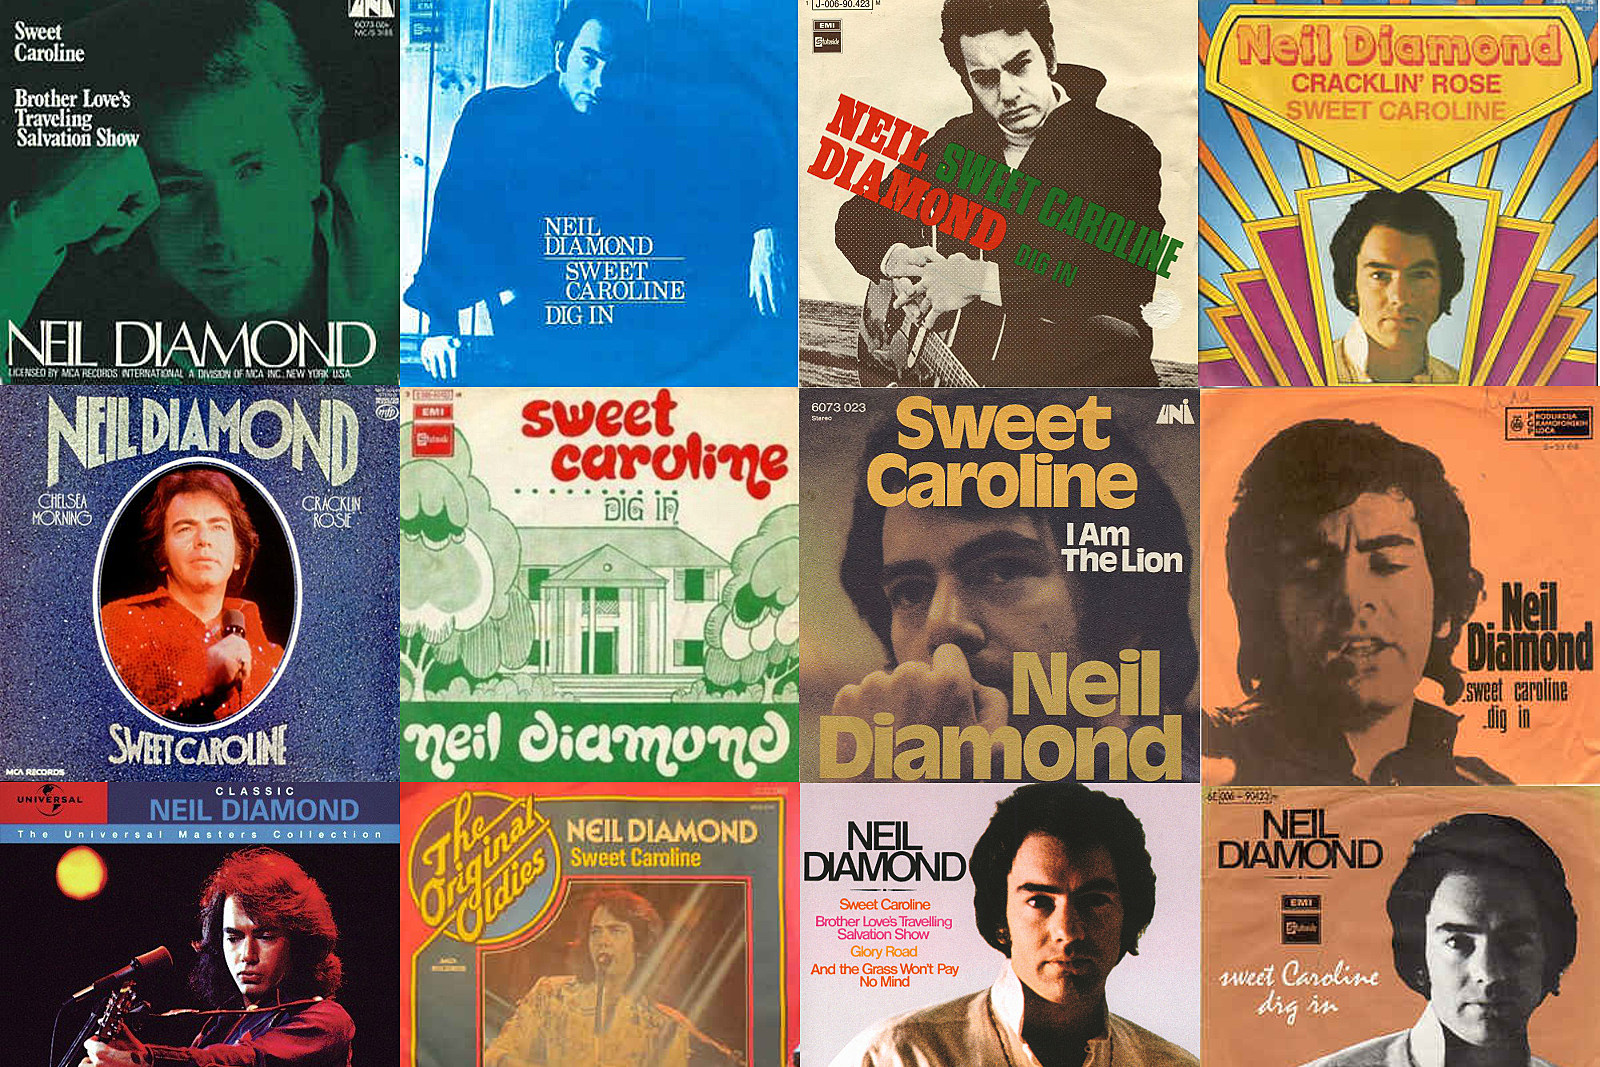 50 Years On, There's No Escaping Neil Diamond's 'Sweet Caroline'